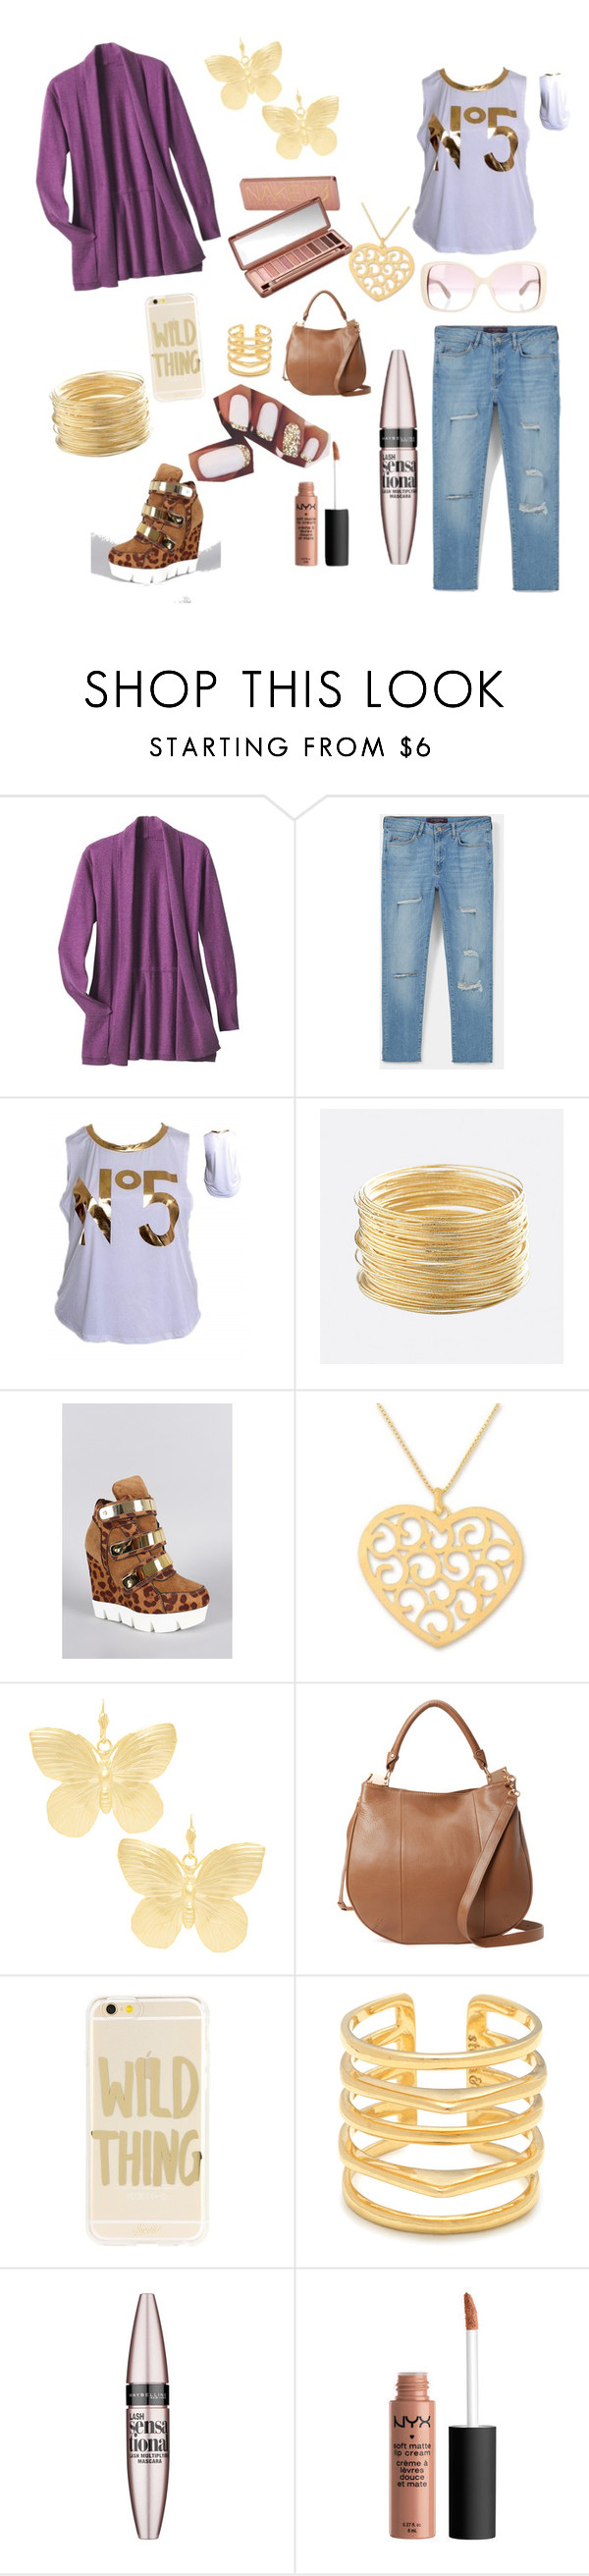 """""""Saturday day out"""" by envymestyles ❤ liked on Polyvore featuring TravelSmith, Violeta by Mango, Avenue, Dollhouse, NOVICA, Kenneth Jay Lane, Foley + Corinna, Sonix, Stella & Dot and Urban Decay"""